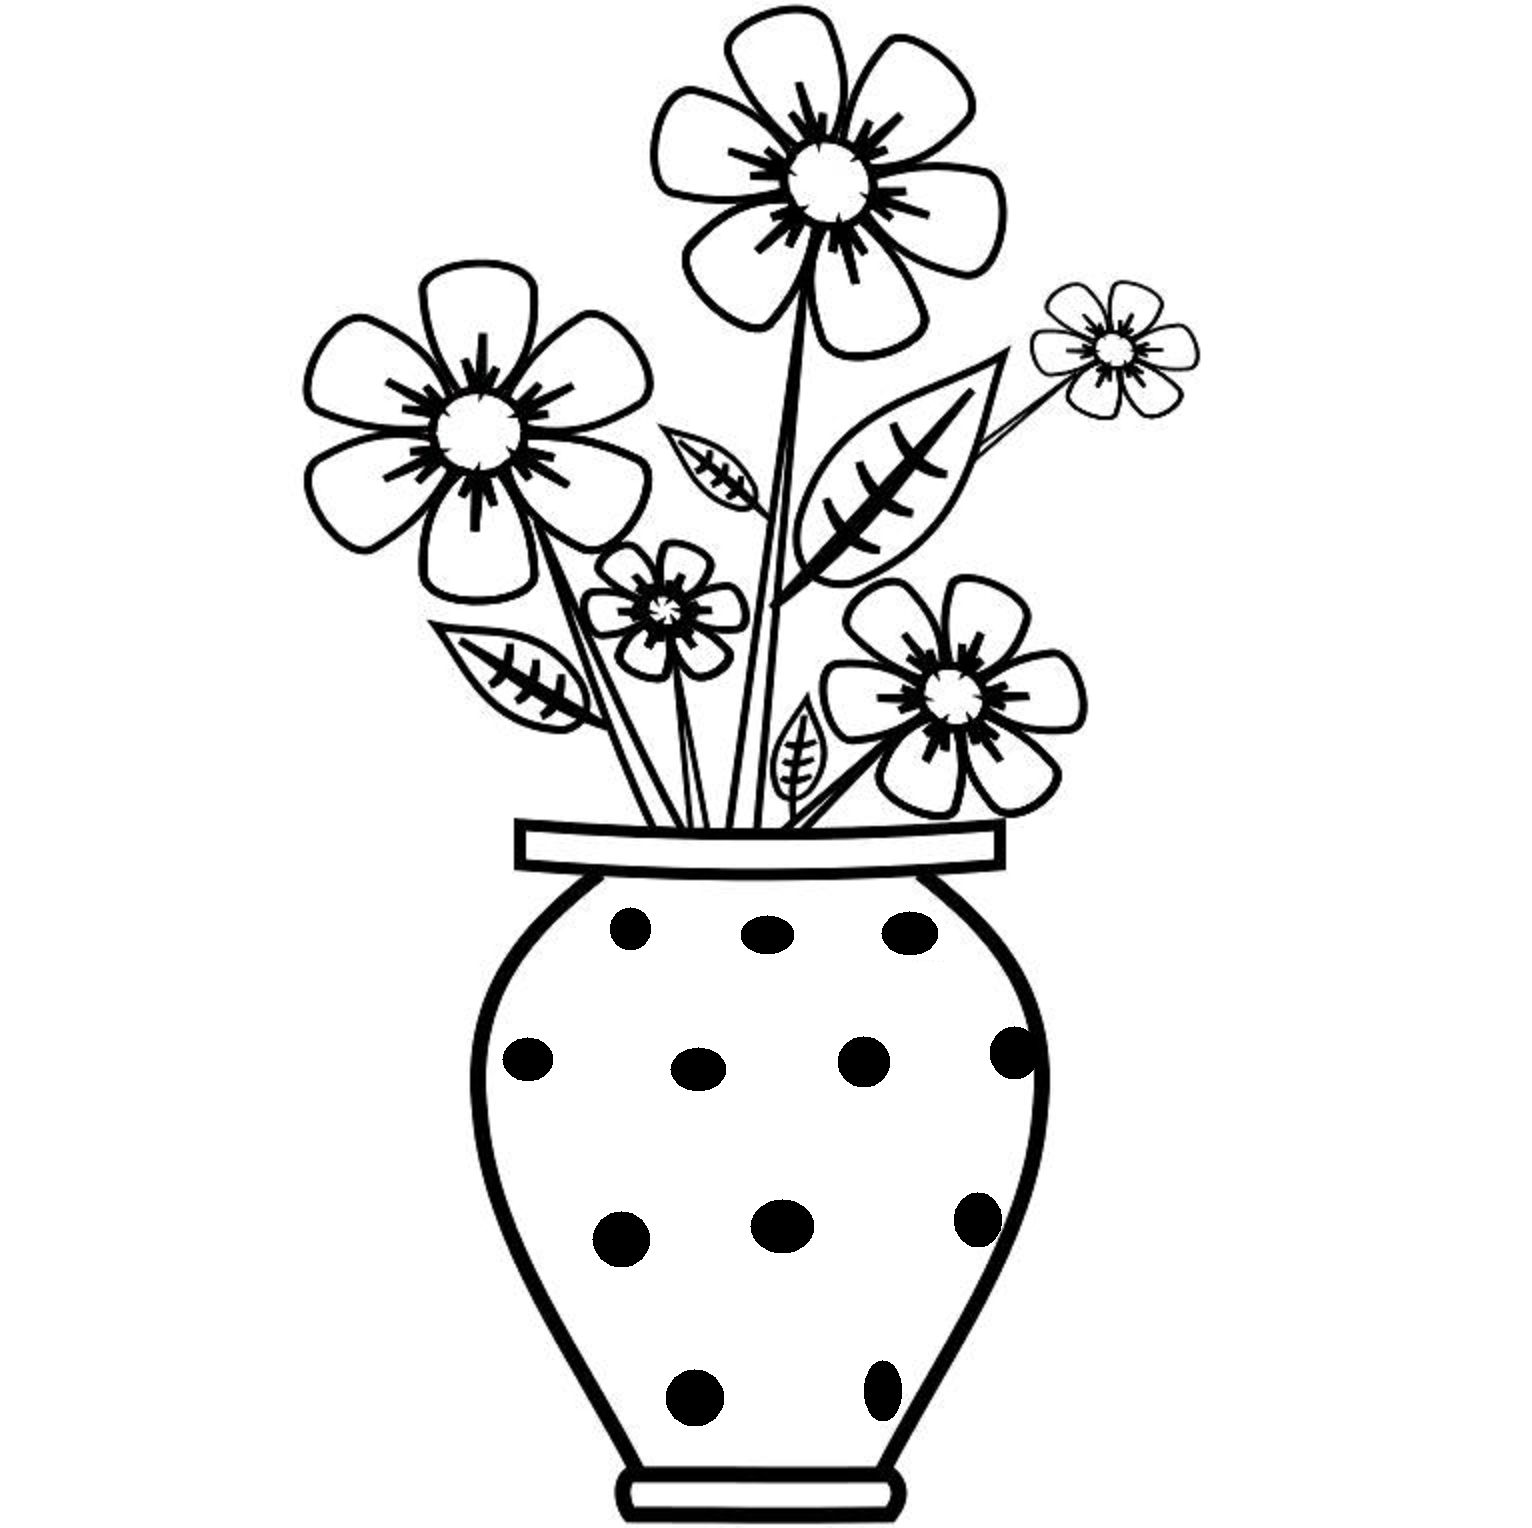 how to draw a bouquet of flowers in a vase flower bouquet in vase coloring page color luna flower how in a a vase to flowers bouquet of draw